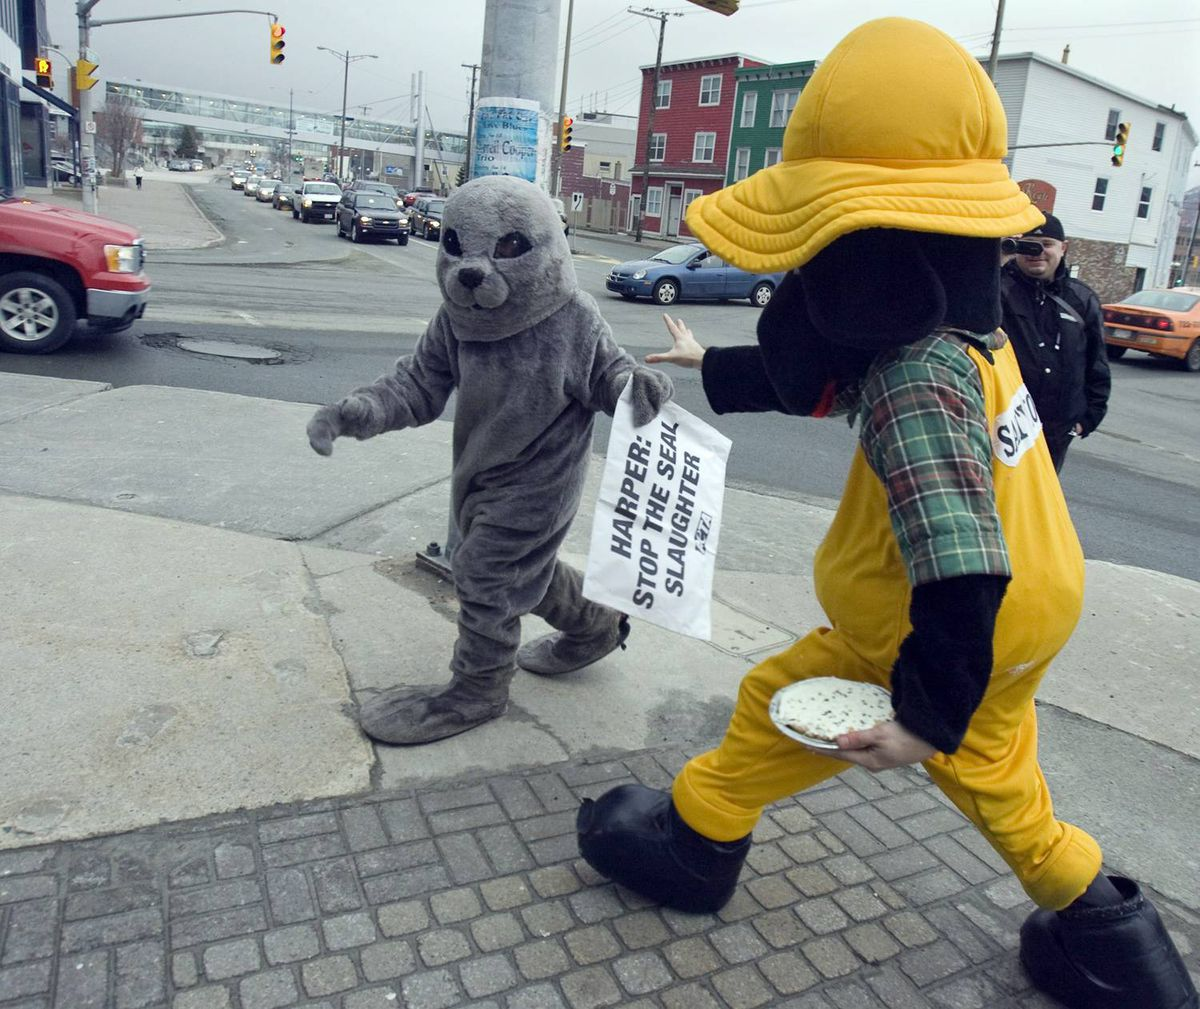 Emily Lavender, an activist with People for the Ethical Treatment of Animals, is chased by an unidentified man dressed in a dog suit in St. John's on Friday, Jan. 29, 2010.